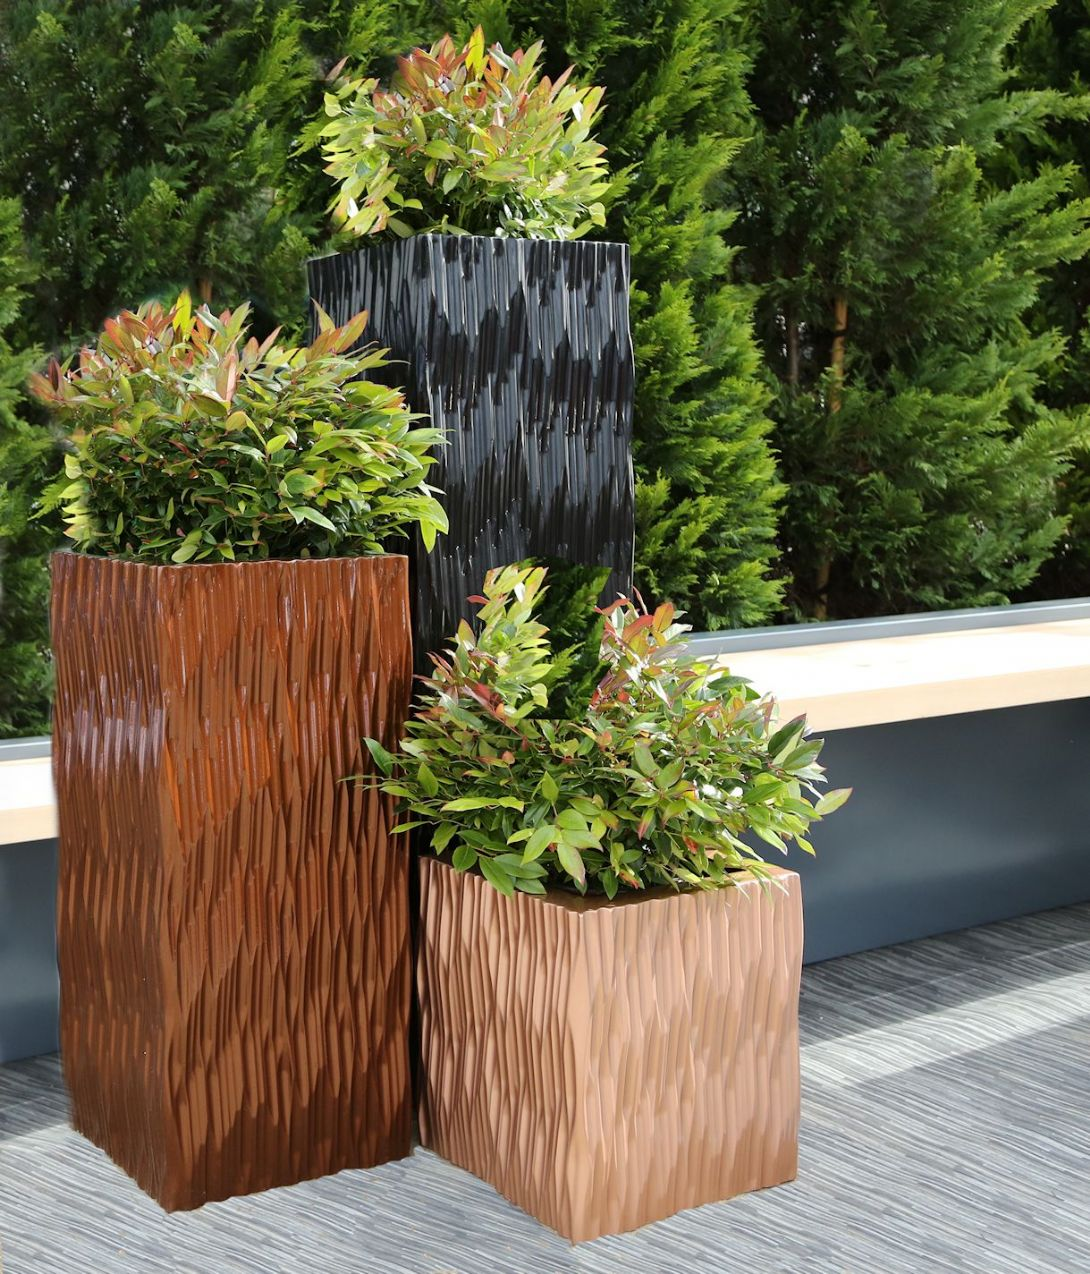 GRp Flexi Tall Square & Trough Planters From potstore.co.uk on